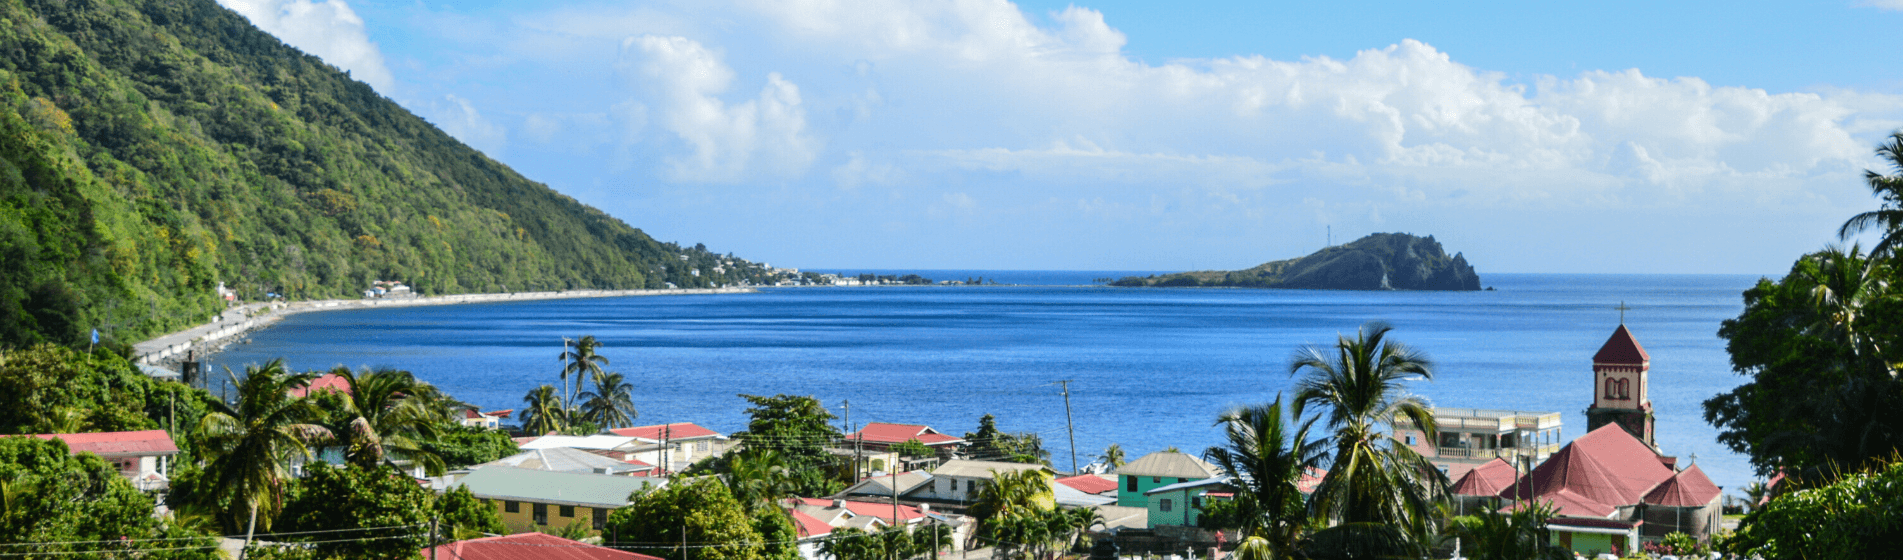 Citizenship by Investment (CBI) Funded Real Estate Developments Will Bolster Dominica's Tourism Offering